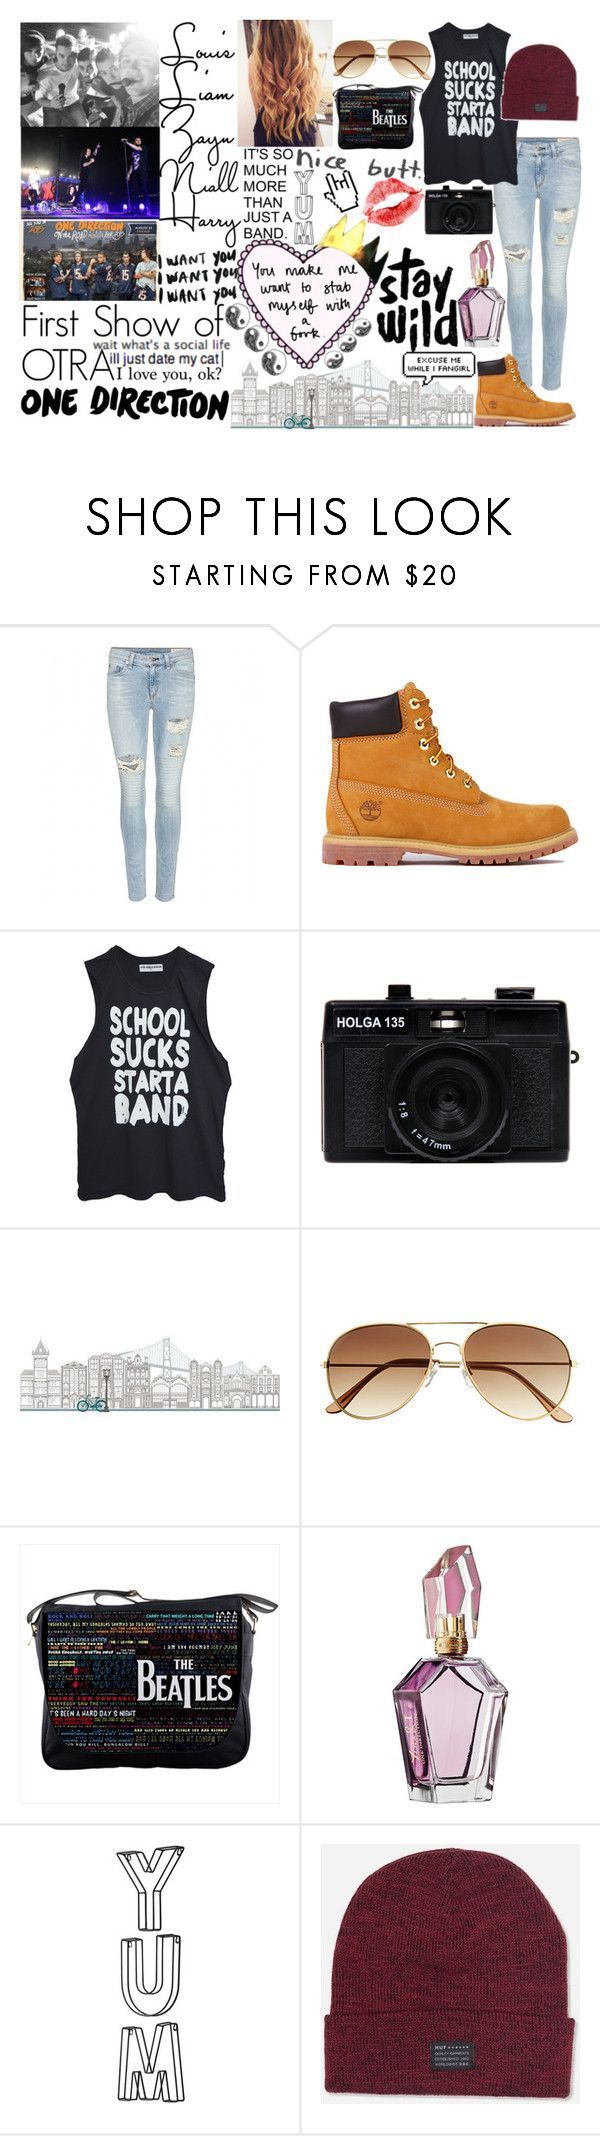 """First Show of OTRA Tour 2015"" by kennedey-lynn-freeman ❤ liked on Polyvore featuring rag & bone, Timberland, High Heels Suicide, Holga, Wall Pops!, H&M, Again, Prada and HUF"